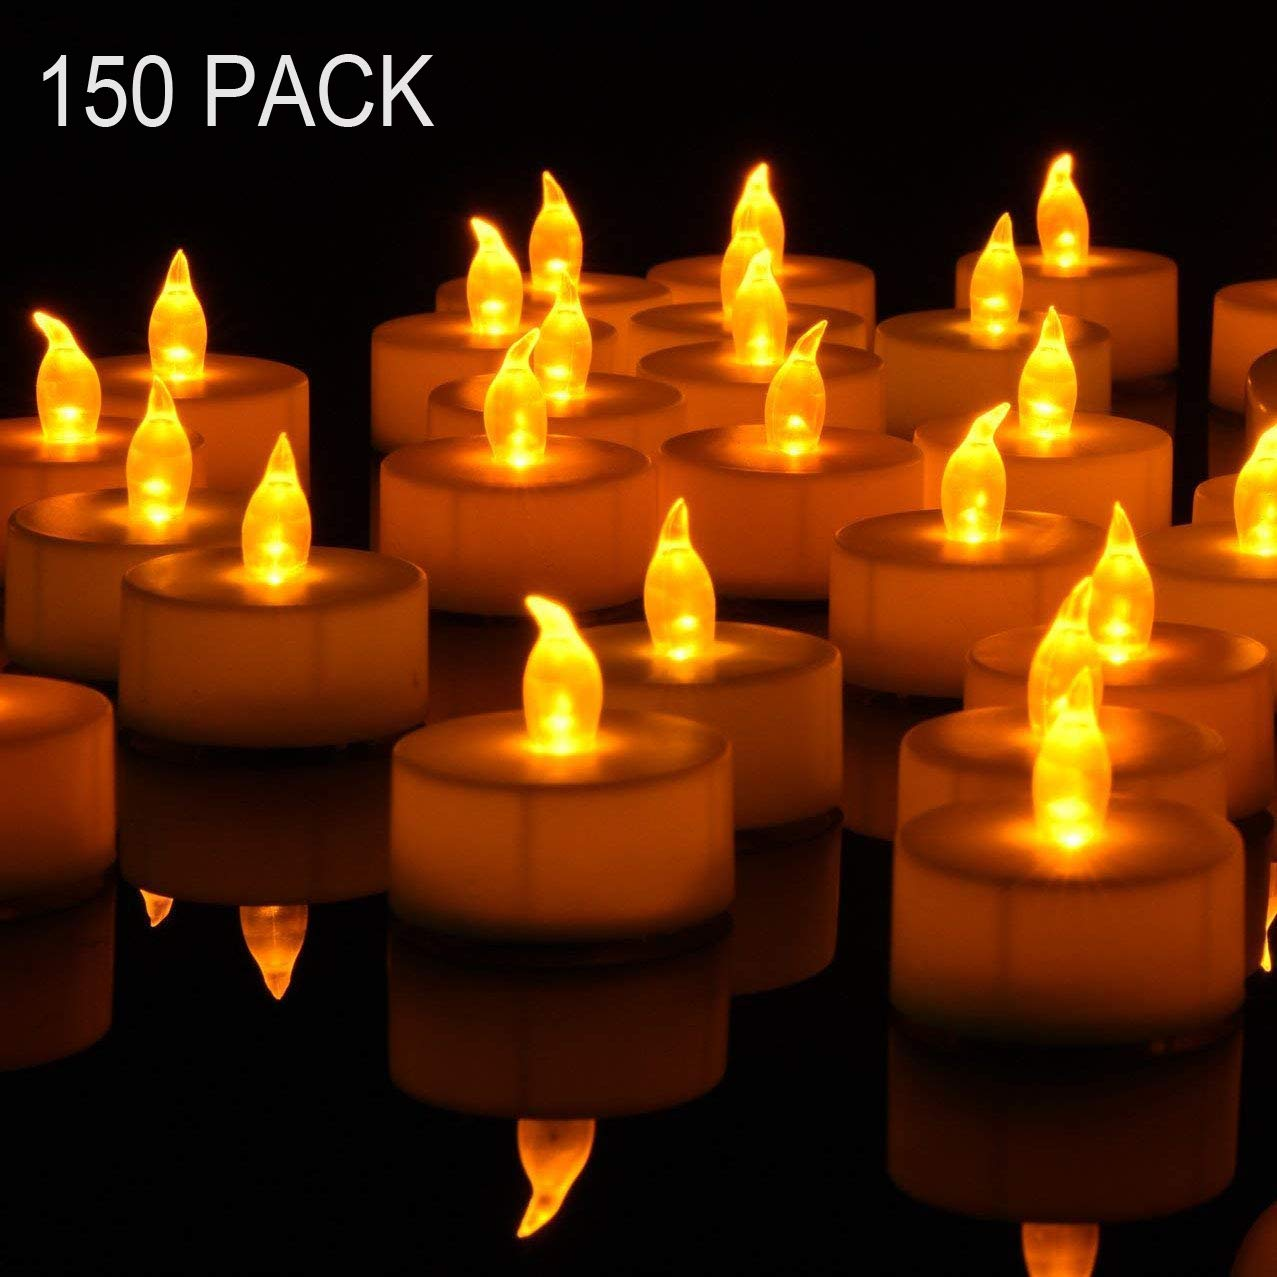 Tea Lights, 150PACK Flameless LED Tea Lights Candles, Flickering Warm Yellow, 100 Hours Battery-Powered Tea Light, Ideal Party, Wedding, Birthday, Gifts Home Decoration (150 Pack) by Nancia